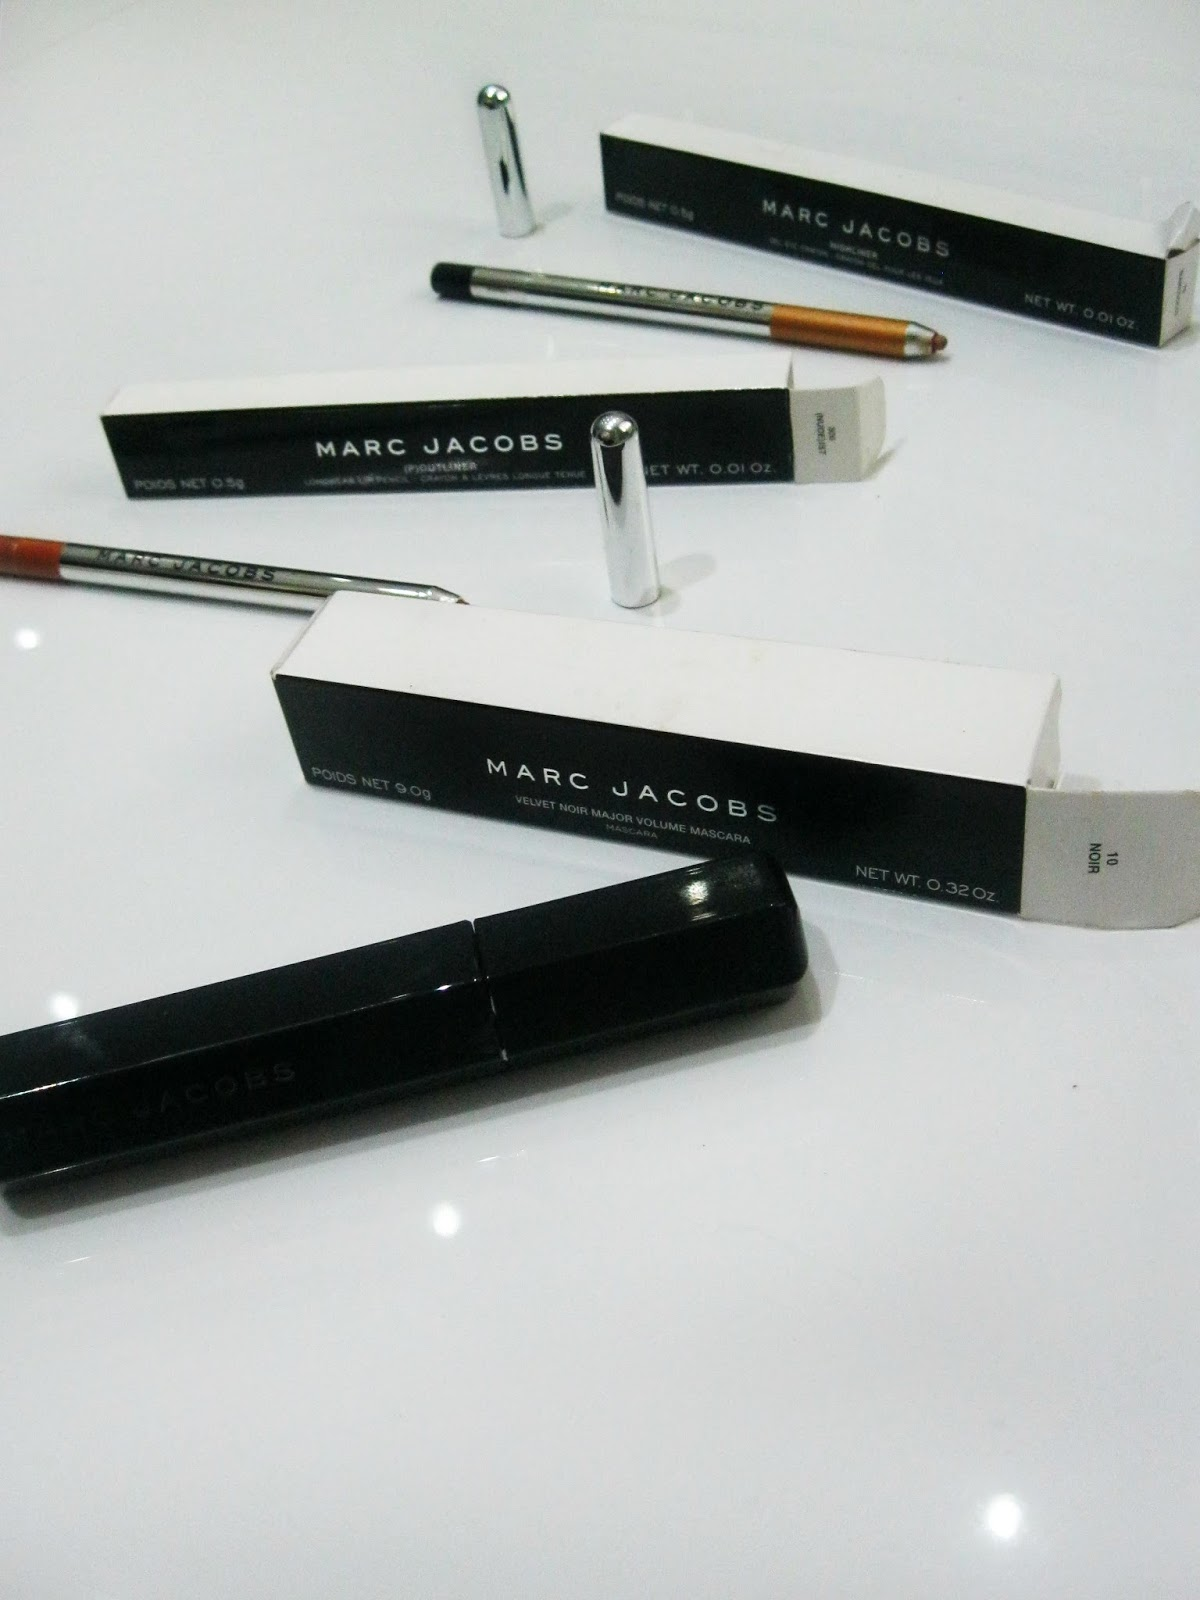 marc jacobs make up, marc jacobs beauty, marc jacobs foundation, marc jacobs make up review, mac jacobs mascara, marc jacobs velvet noir, marc jacobs review, marc jacobs highliner,